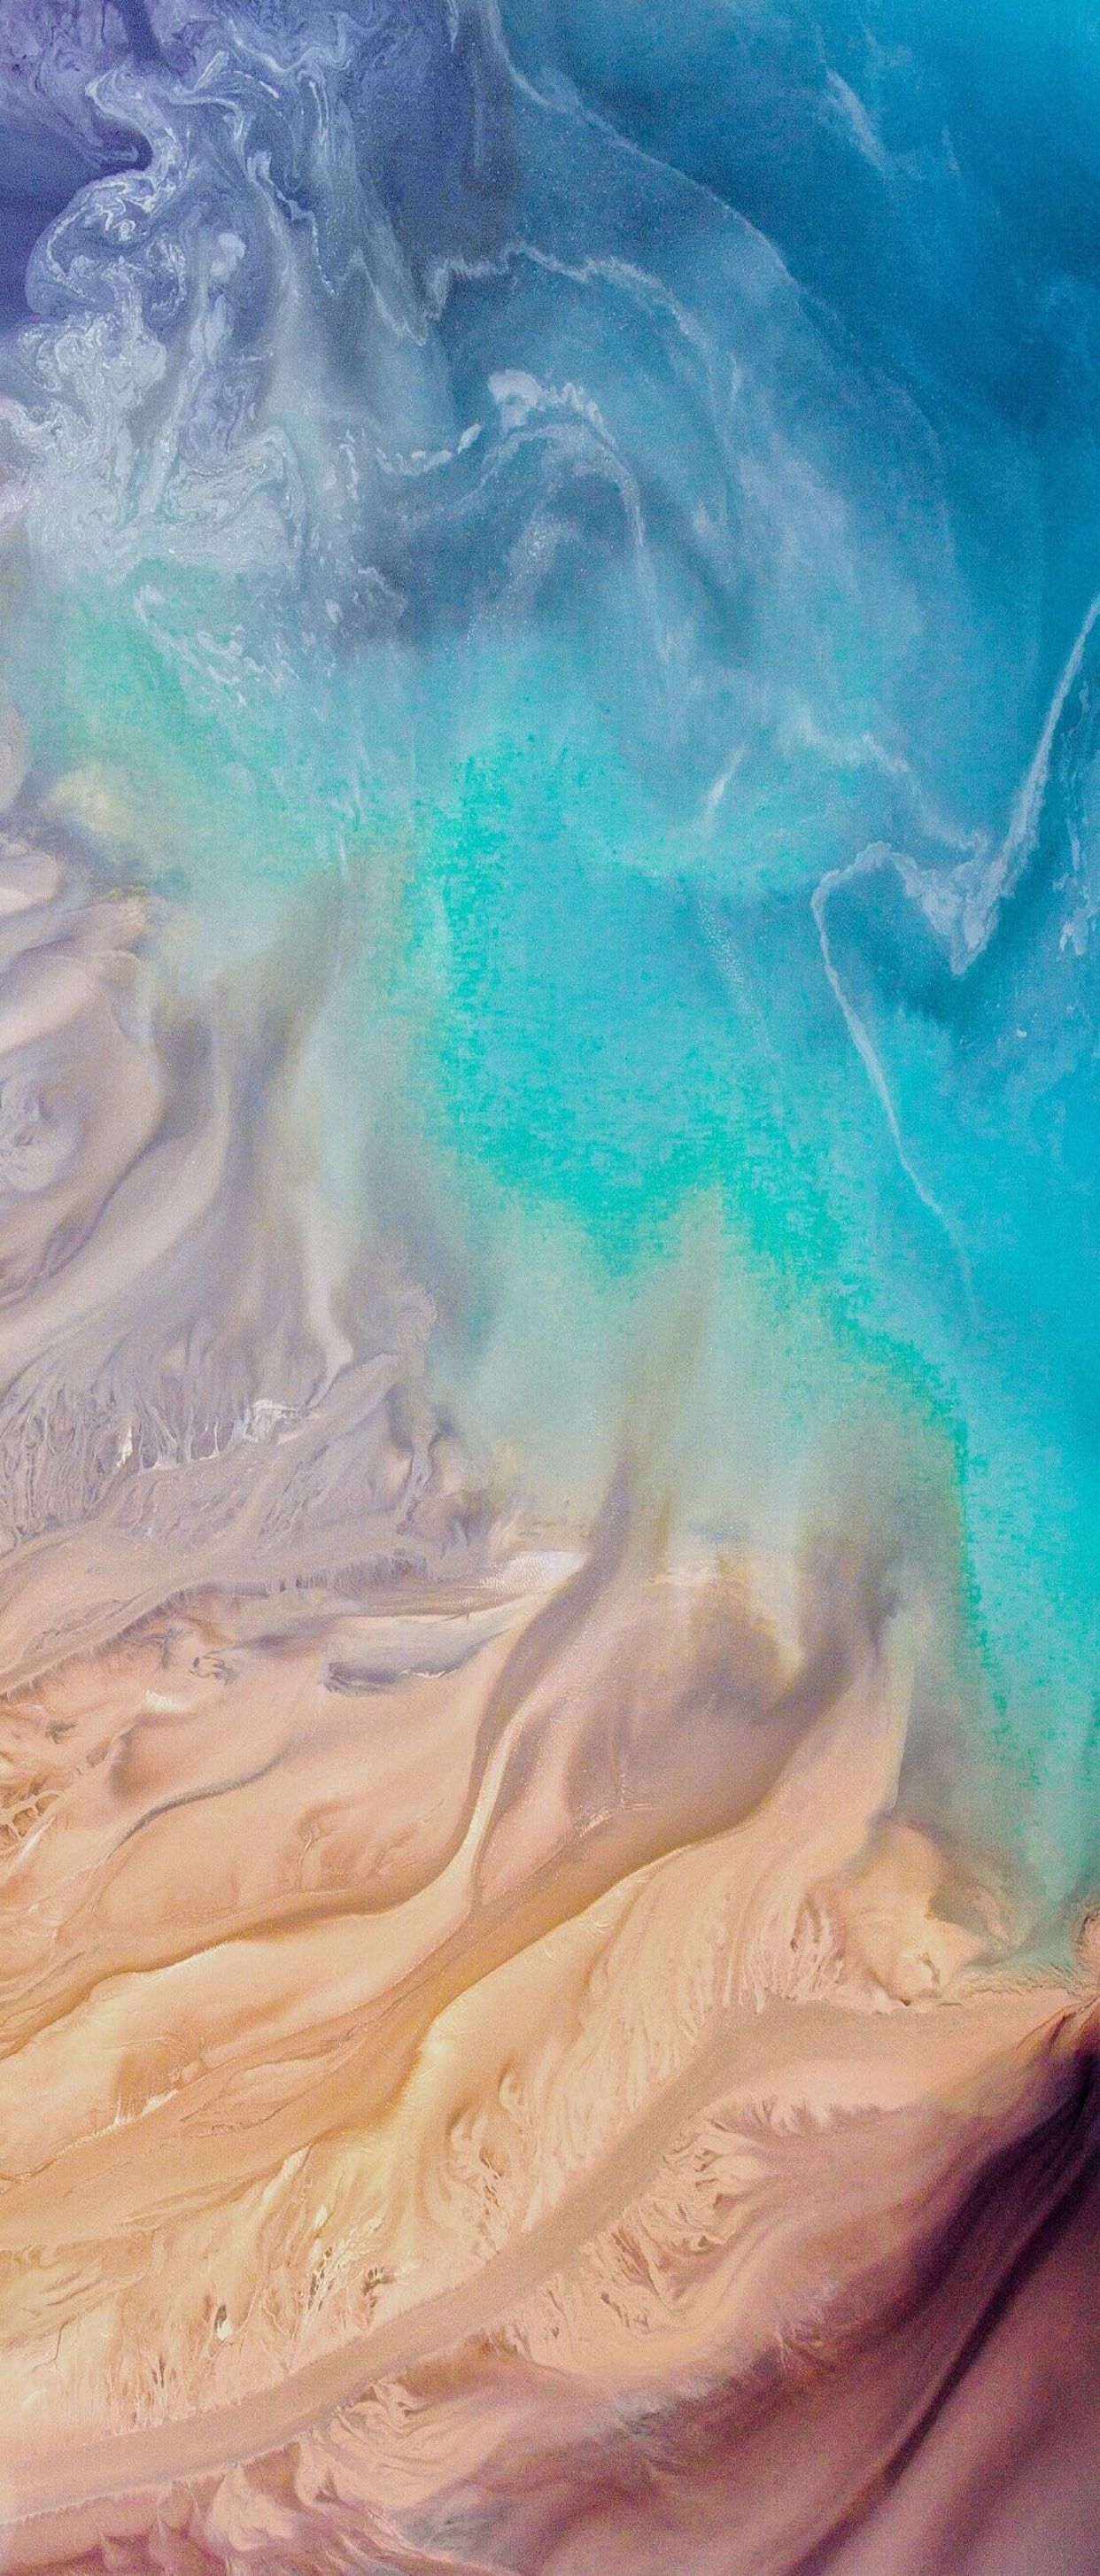 ios 8 wallpaper 4k: IOS 11, IPhone X, Aqua, Blue, Water, Beach, Wave, Ocean